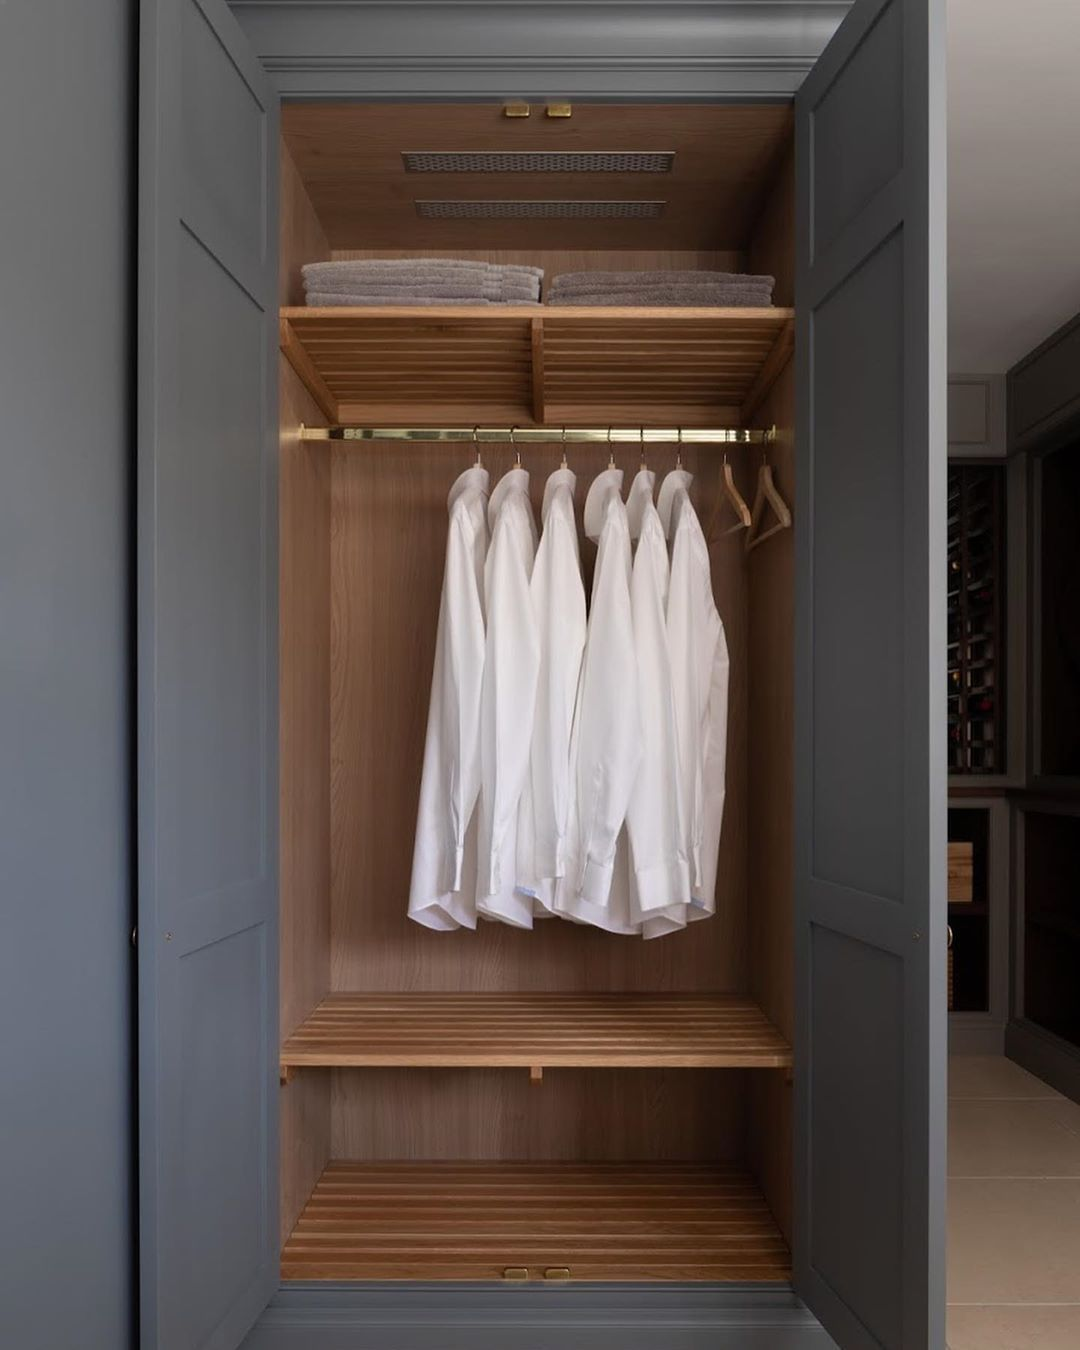 A Drying Cupboard Is A Great Addition To A Utility Laundry Room As You Can Dry Clothes Easily Without Using Air Drying Cupboard Laundry Room Layouts Cupboard